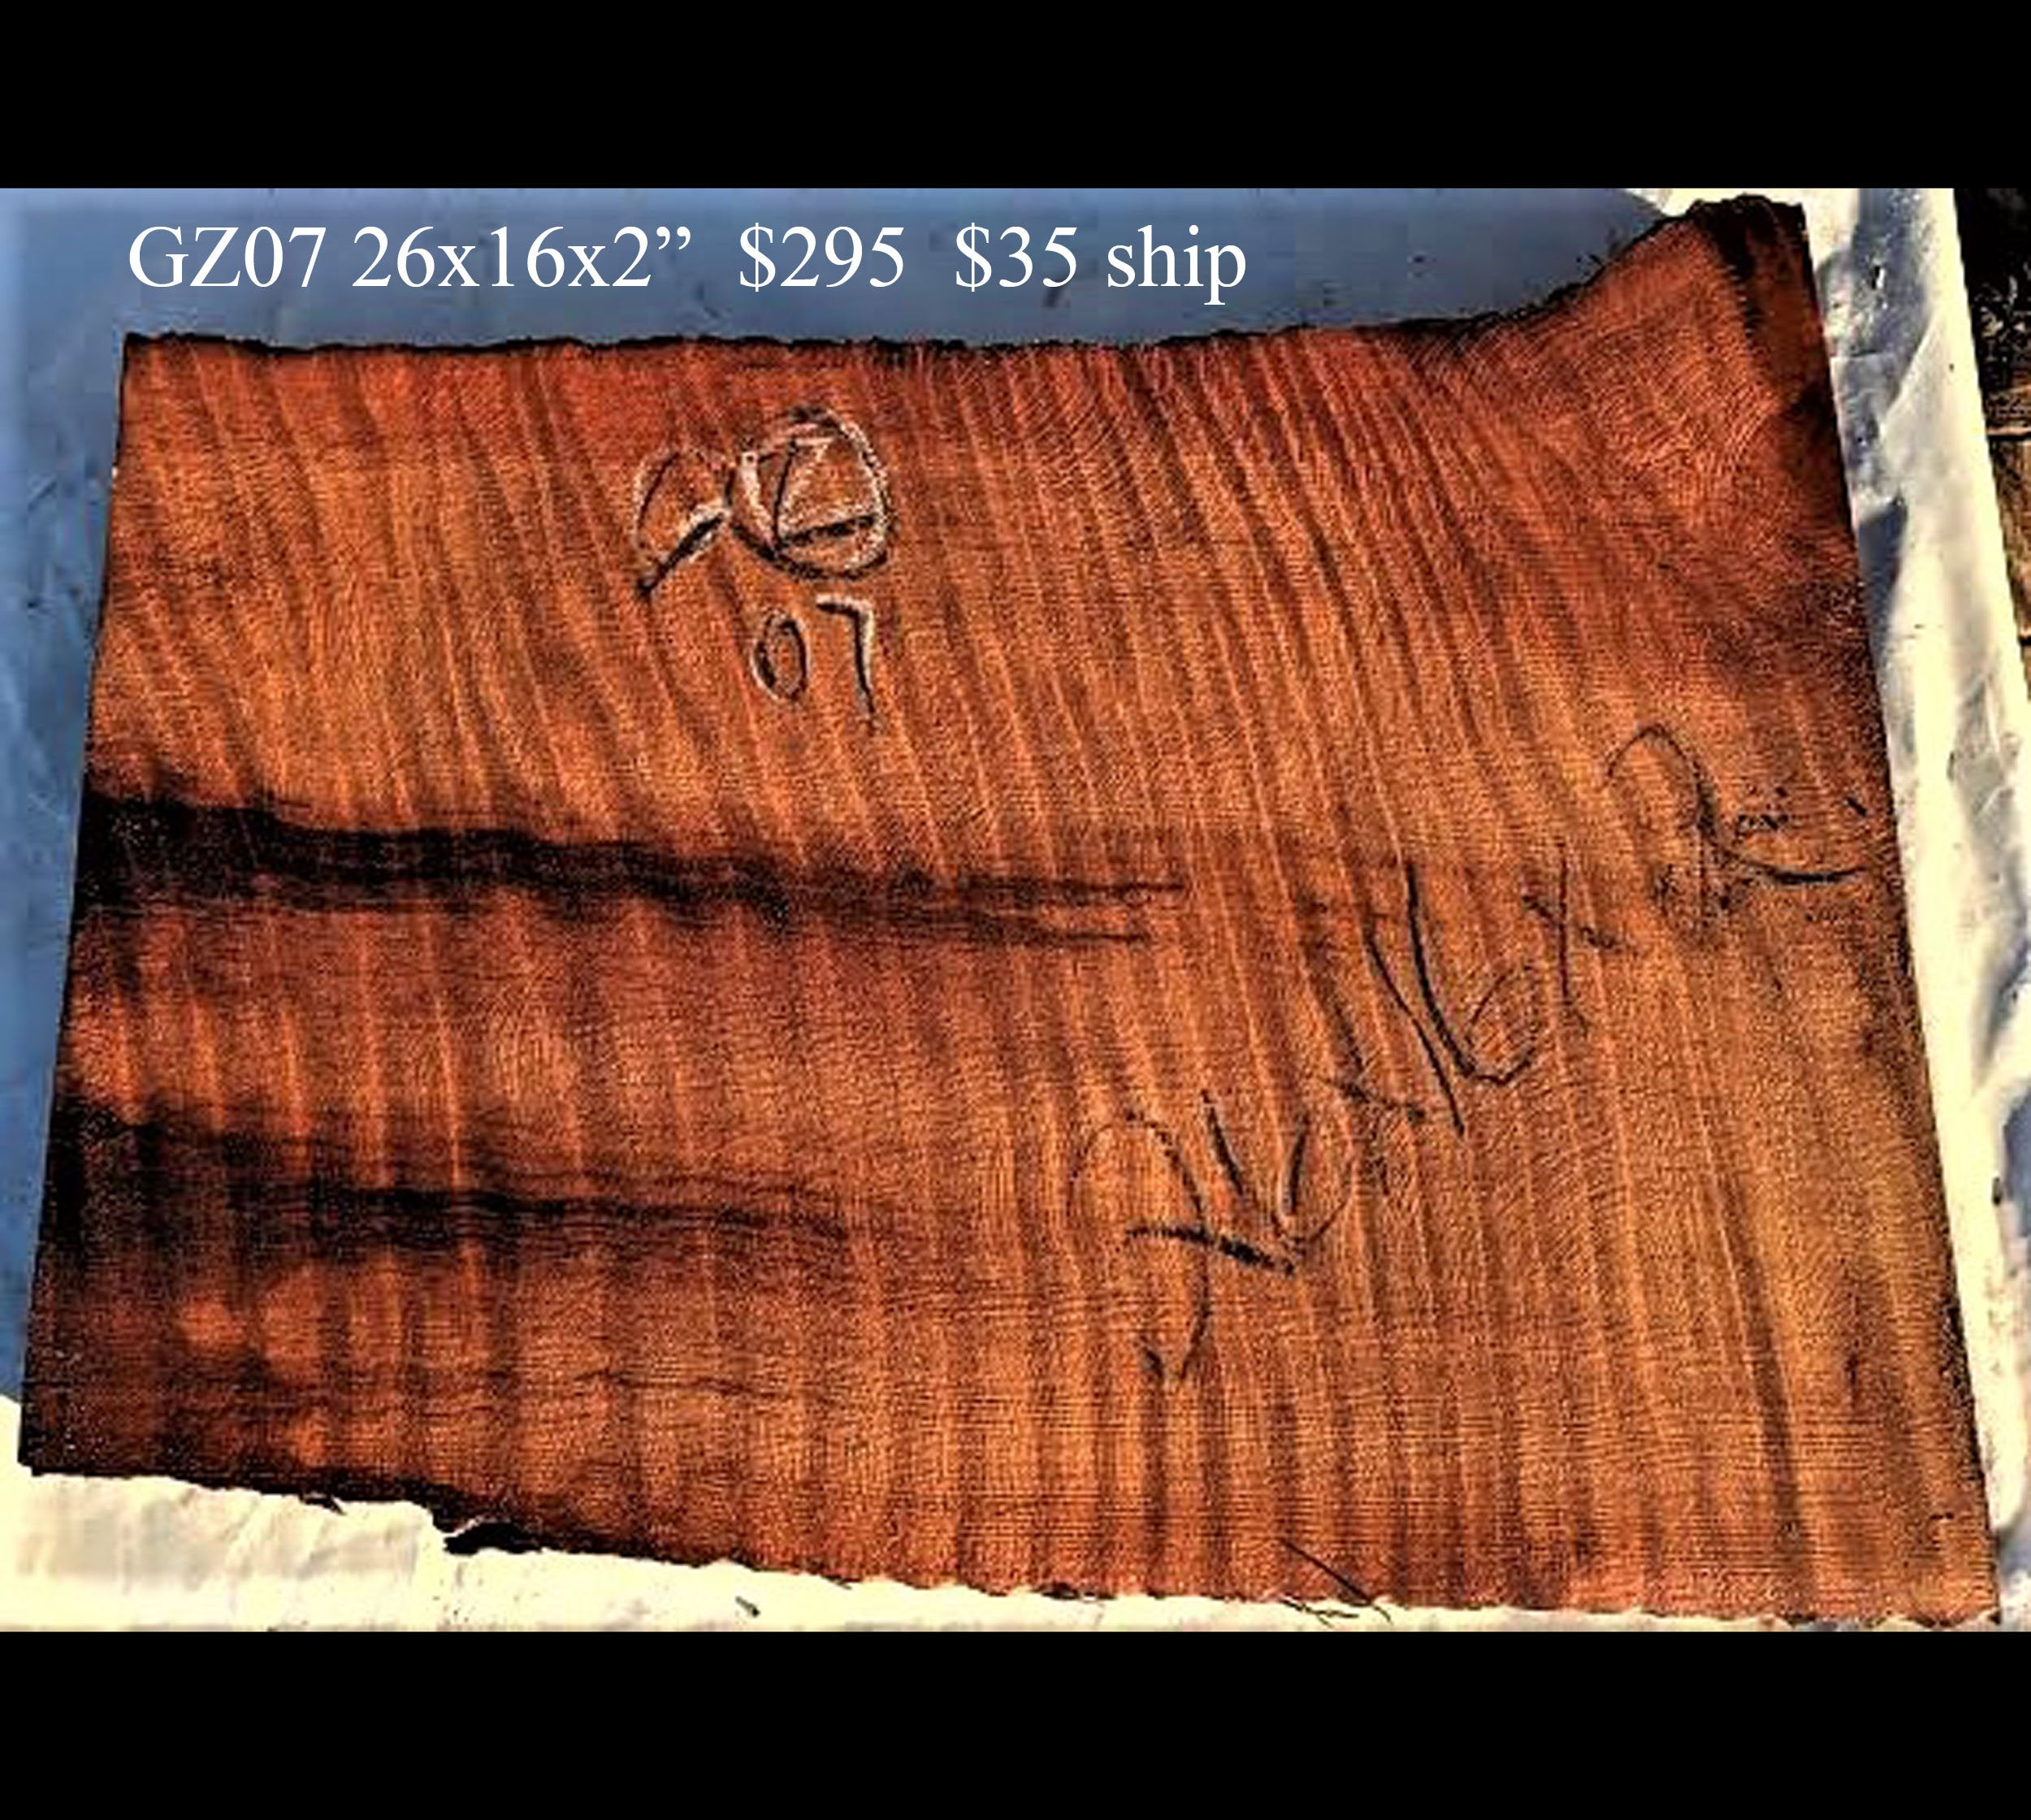 guitar billet | curly redwood | craft wood | carving wood- gz07